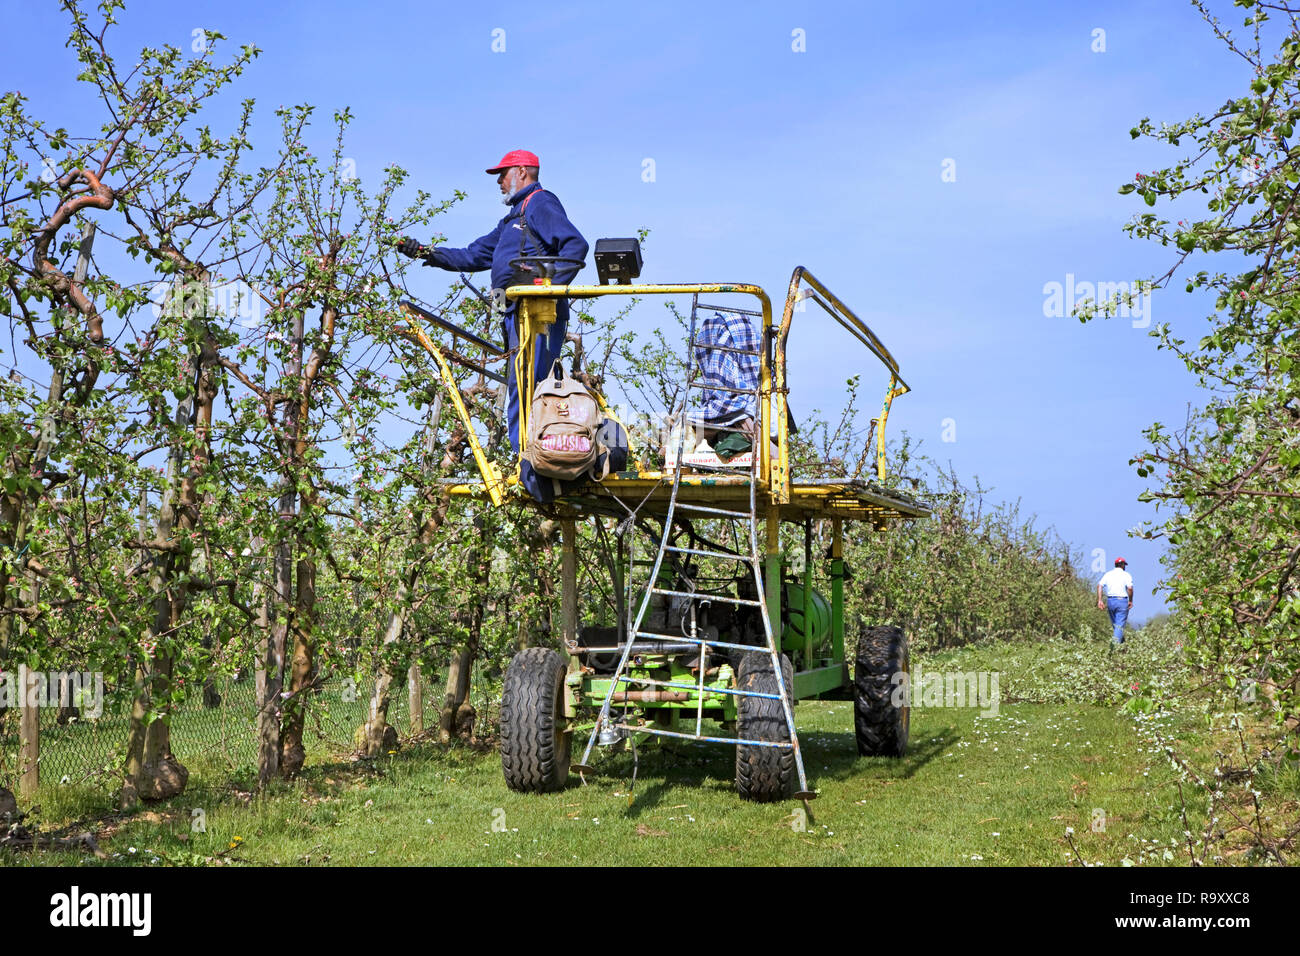 Migrant labourer / immigrant worker clipping fruit trees with electric pruning shear in apple orchard in spring - Stock Image